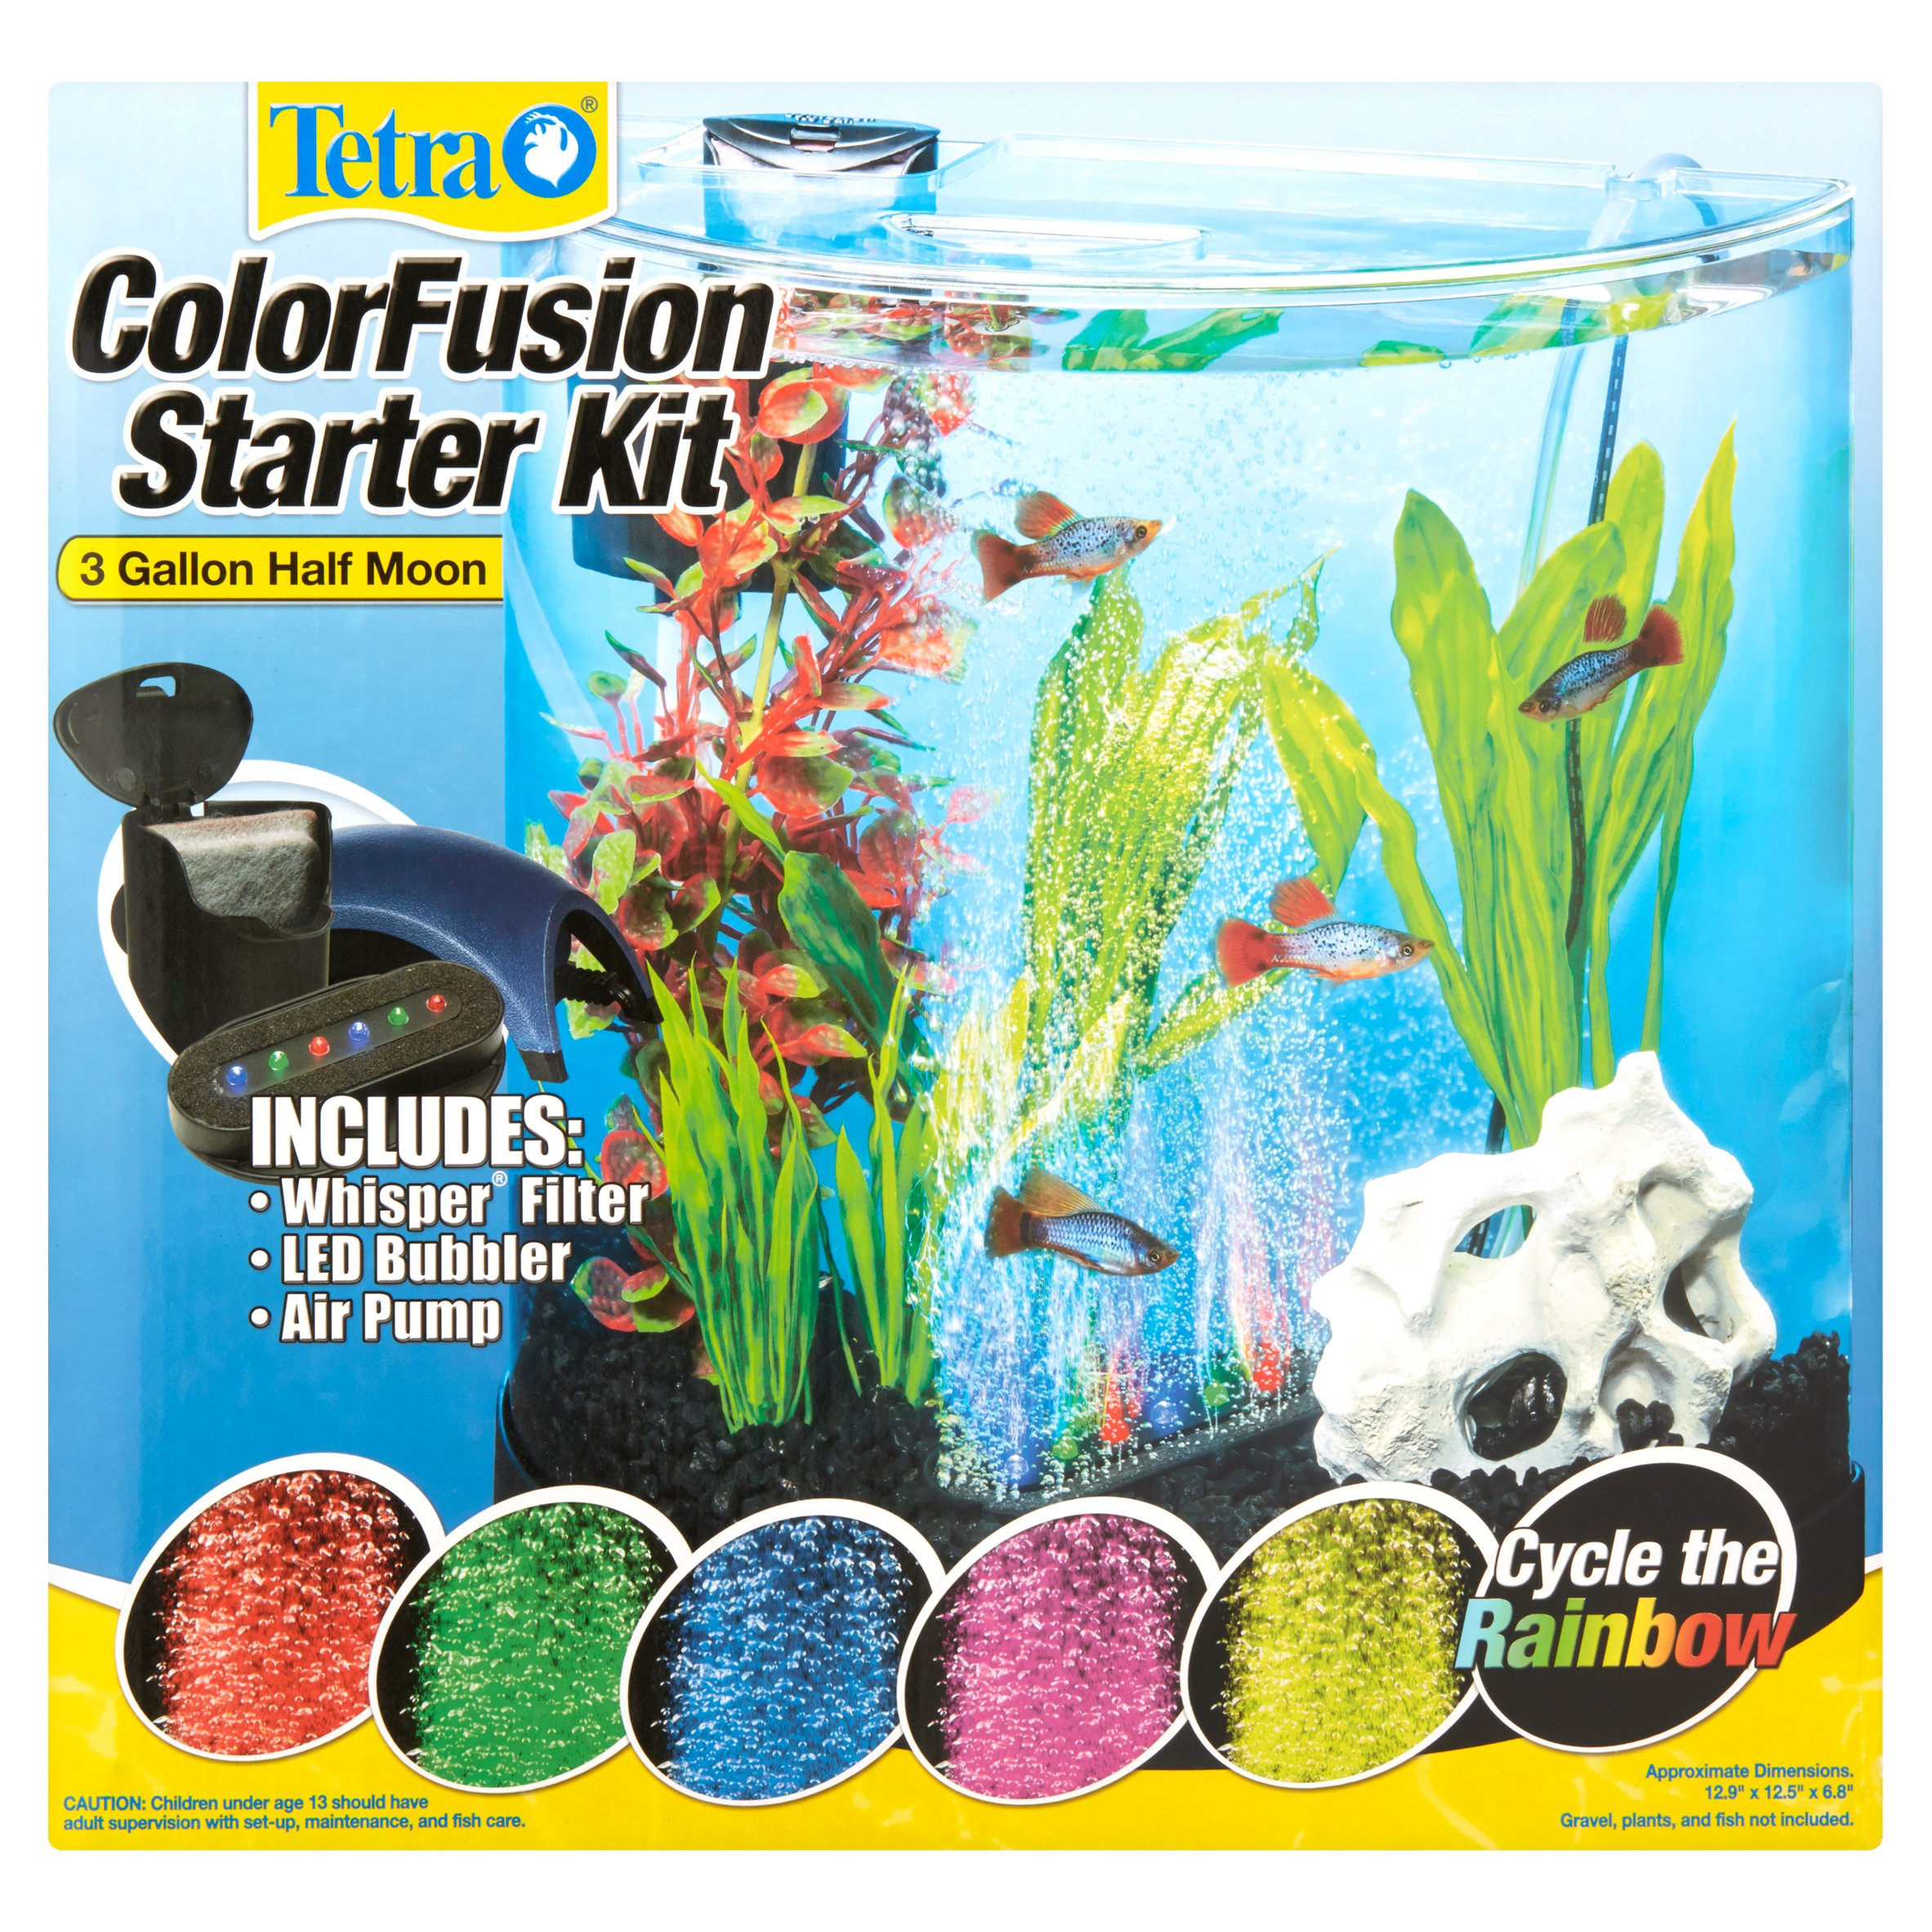 How to feed aquarium fish when on vacation wiring diagrams for Automatic fish feeder walmart